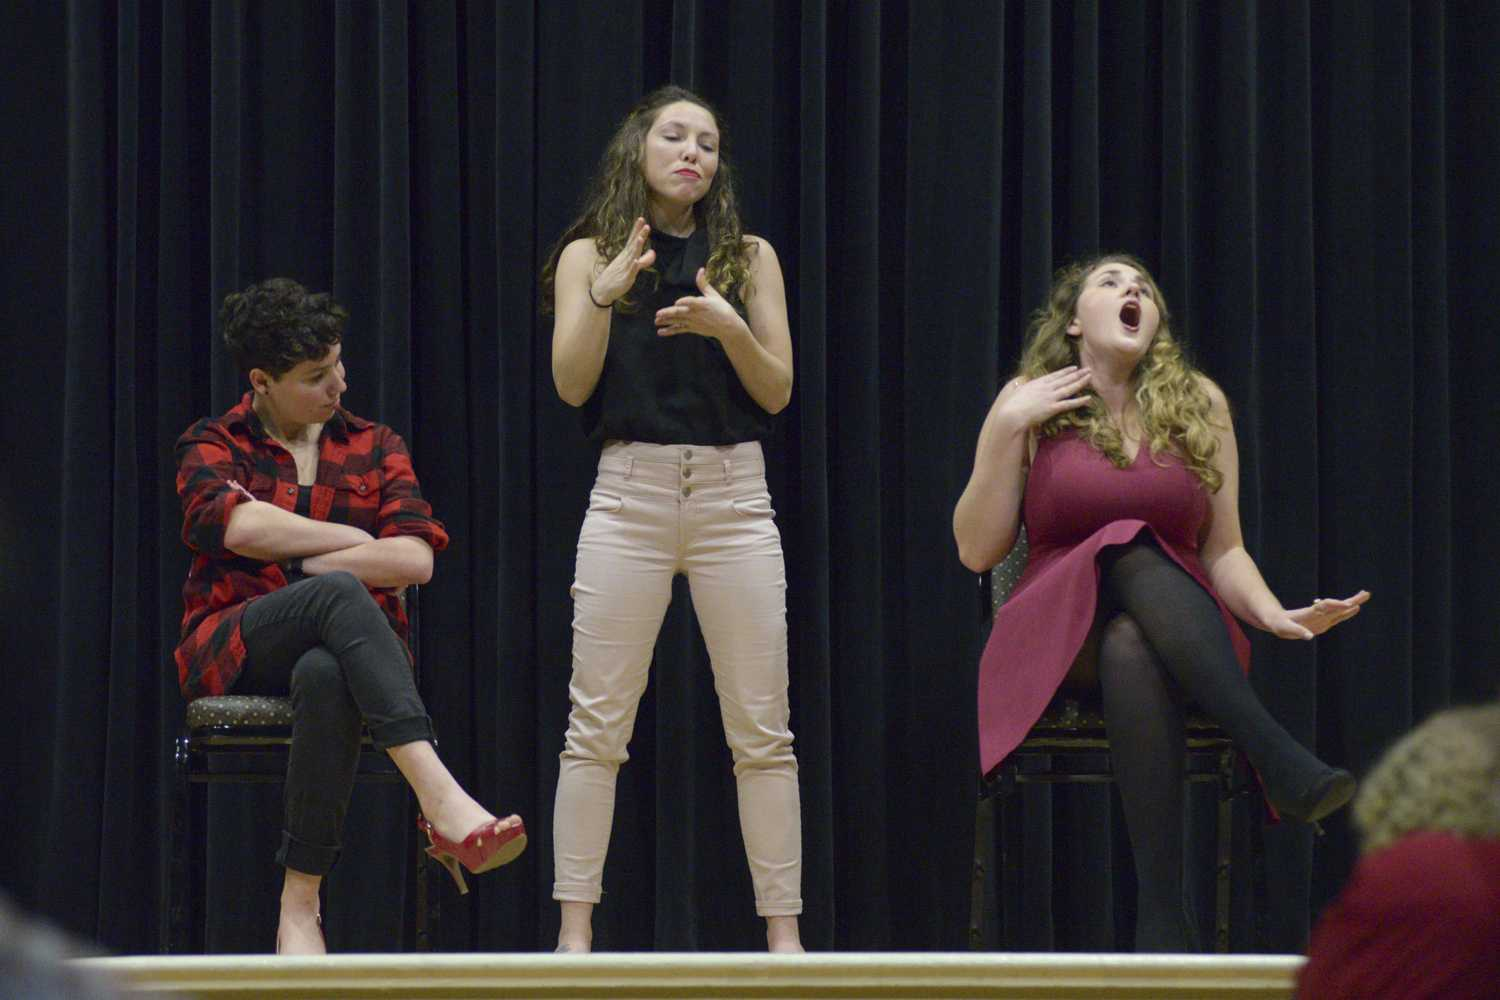 Natalie Miller (left), Emily Rush, and Savannah Garber (right) perform as part of the Vagina Monologues hosted by the Pitt Campus Women's Organization in the O'Hara Student Center this weekend. (Photo by Issi Glatts | Assistant Visual Editor)